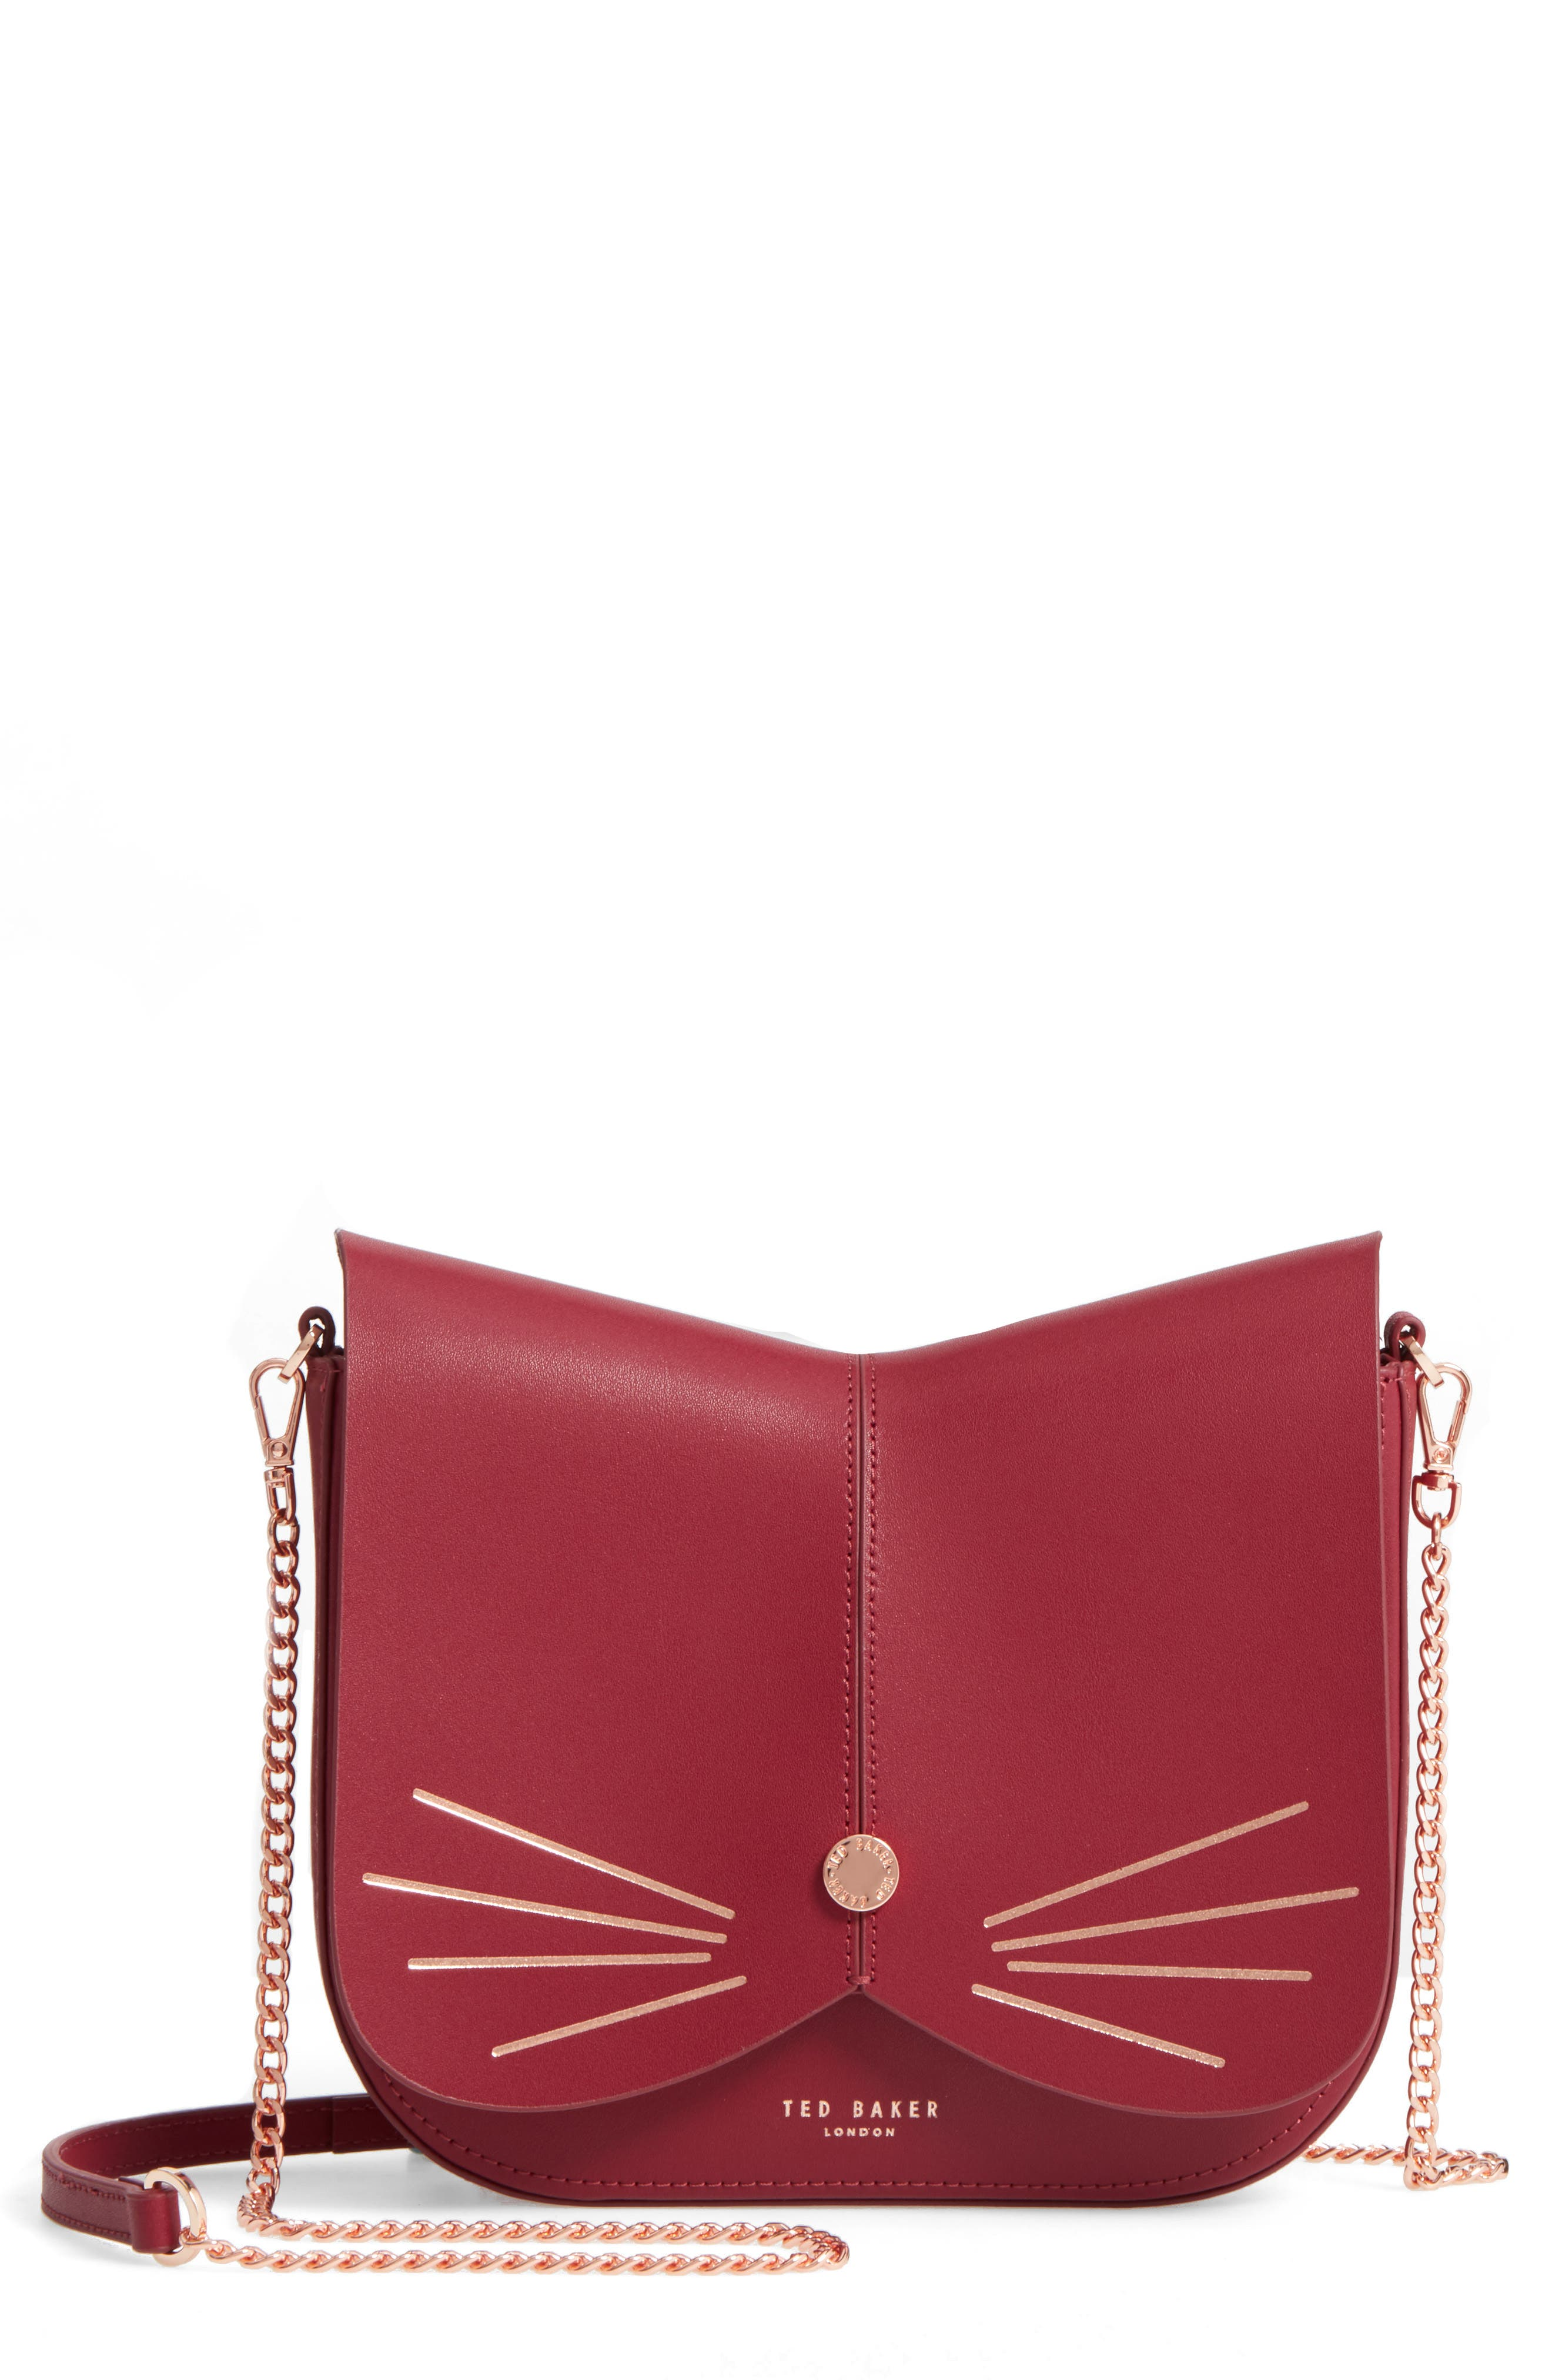 Kittii Cat Leather Crossbody Bag,                         Main,                         color, Oxblood